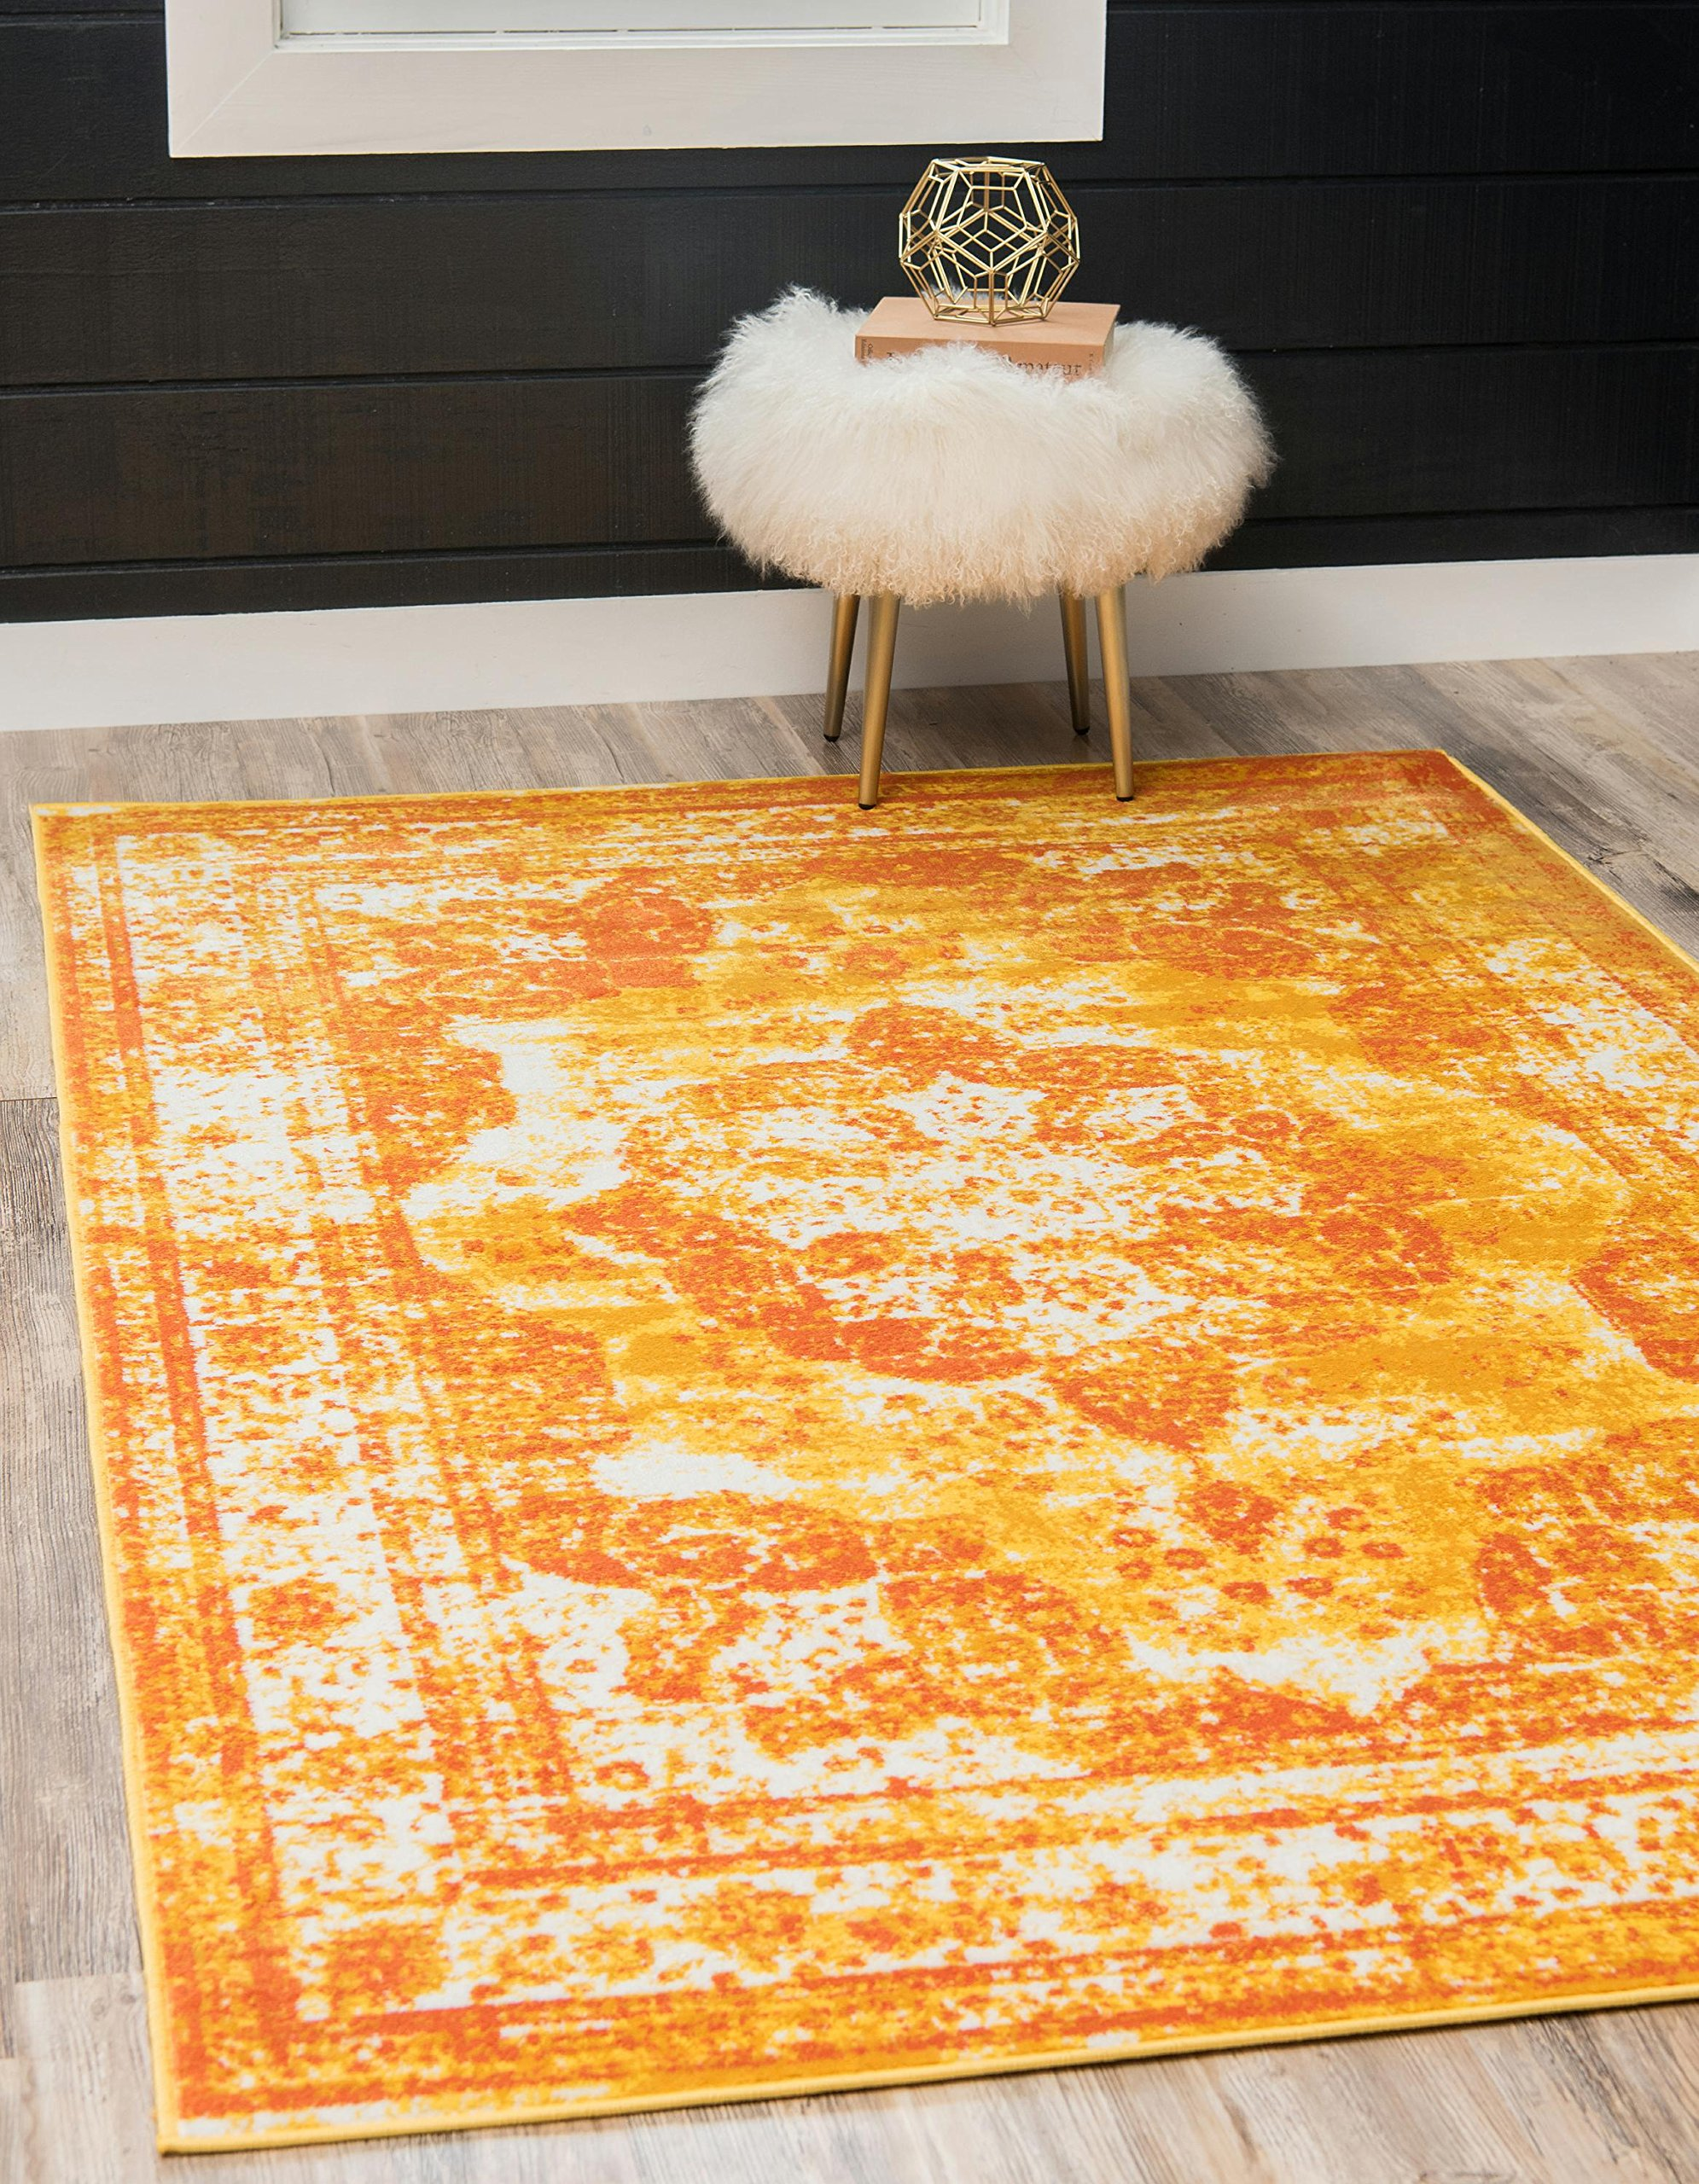 Unique Loom Sofia Collection Traditional Vintage Orange Area Rug (4' x 6')